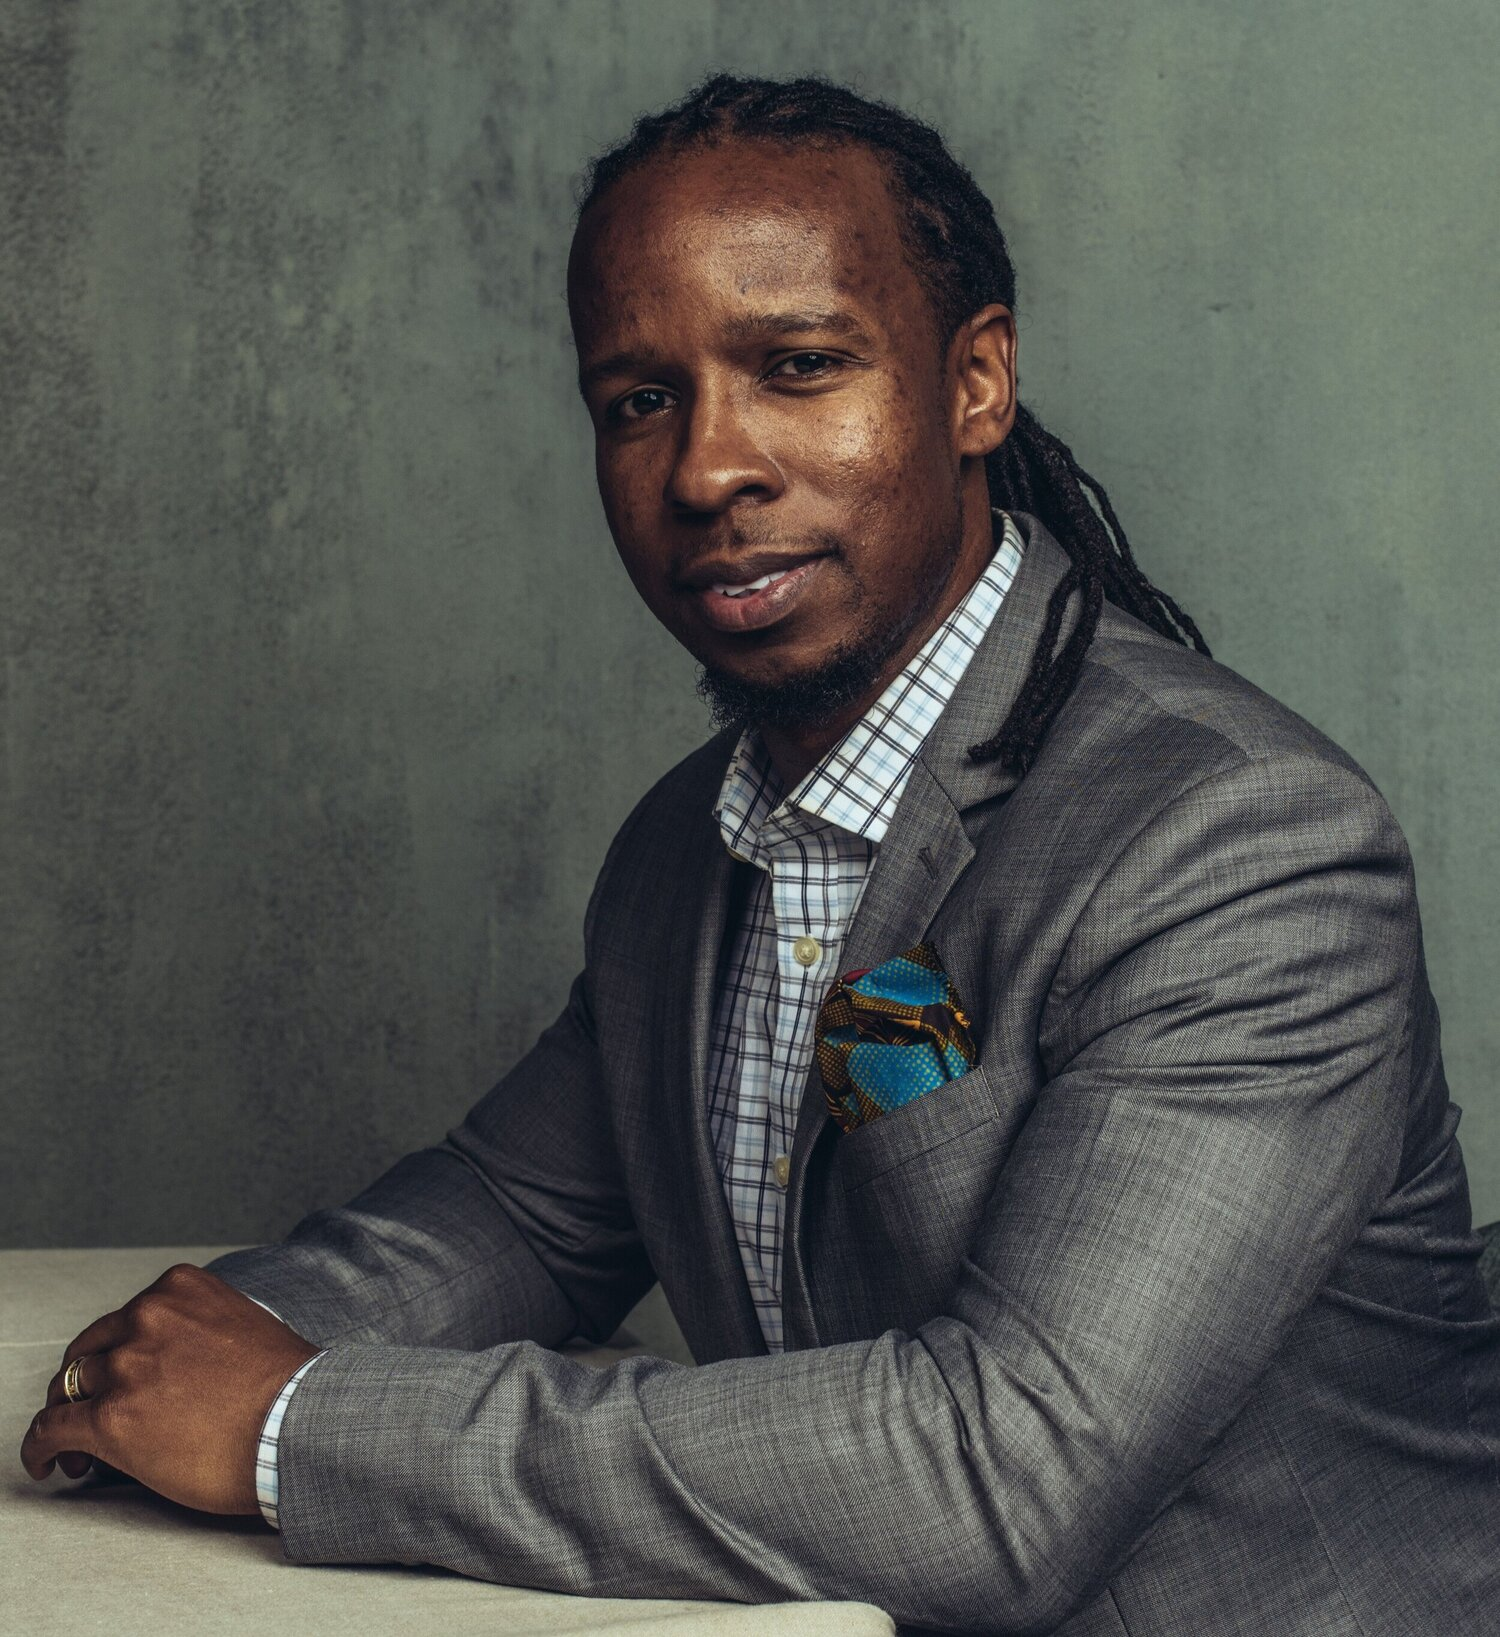 Ibram X. Kendi has his hands clasped and arms resting on a table.